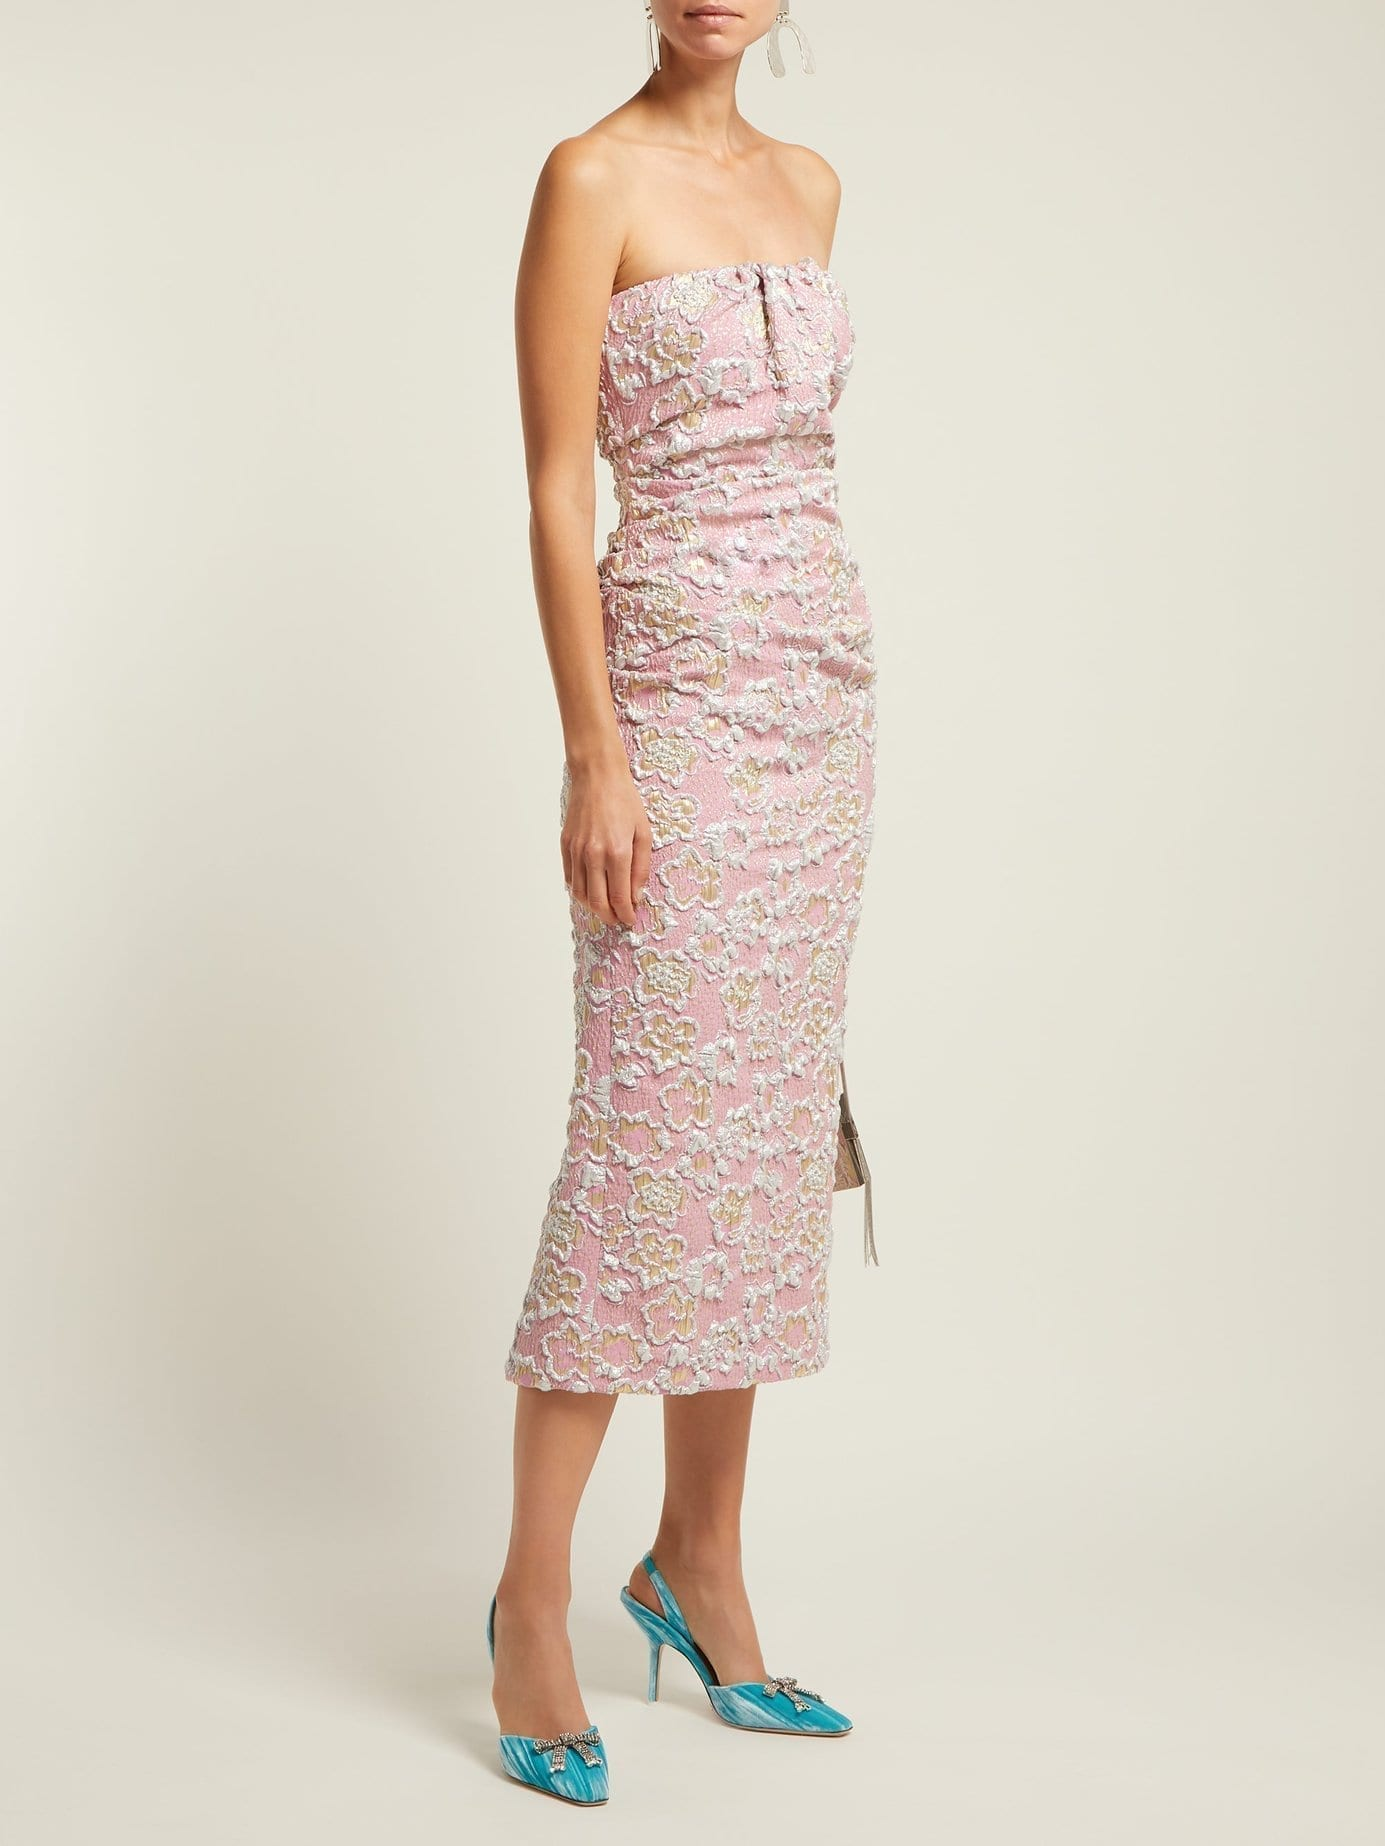 MIU MIU Strapless Cloqué Midi Pink Dress